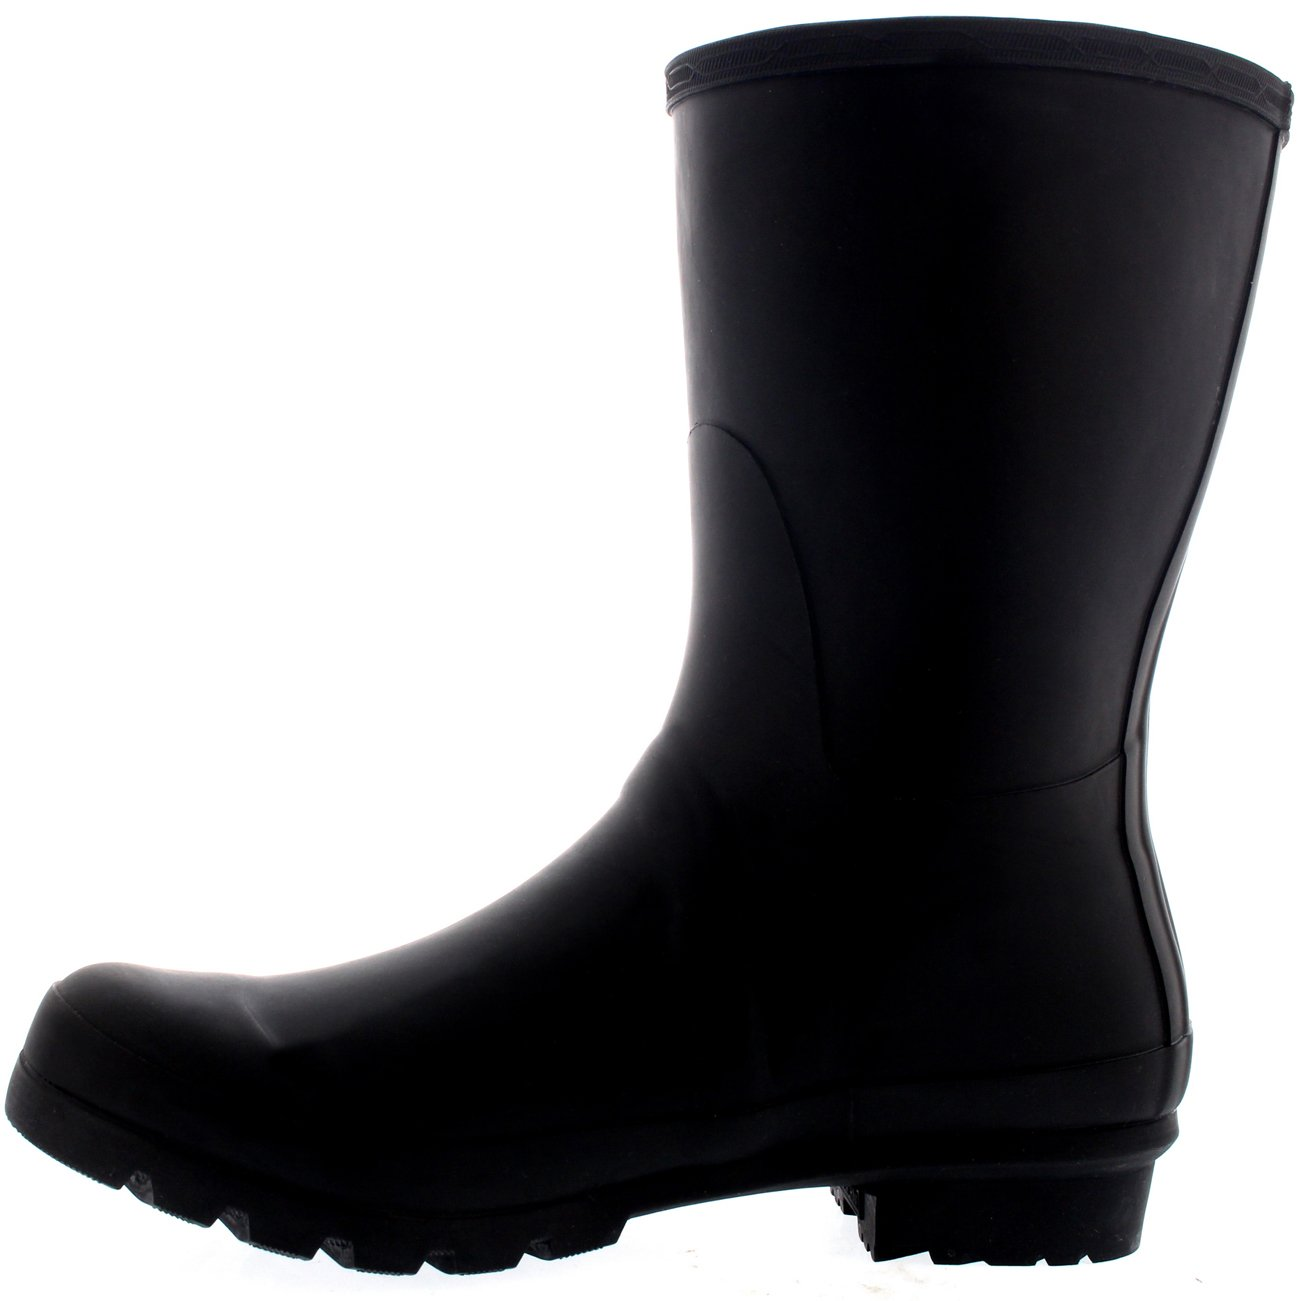 Polar Mens Adjustable Side Rubber Waterproof Rain Wellingtons Boots - Black - US13/EU46 - BL0232 by Polar Products (Image #2)